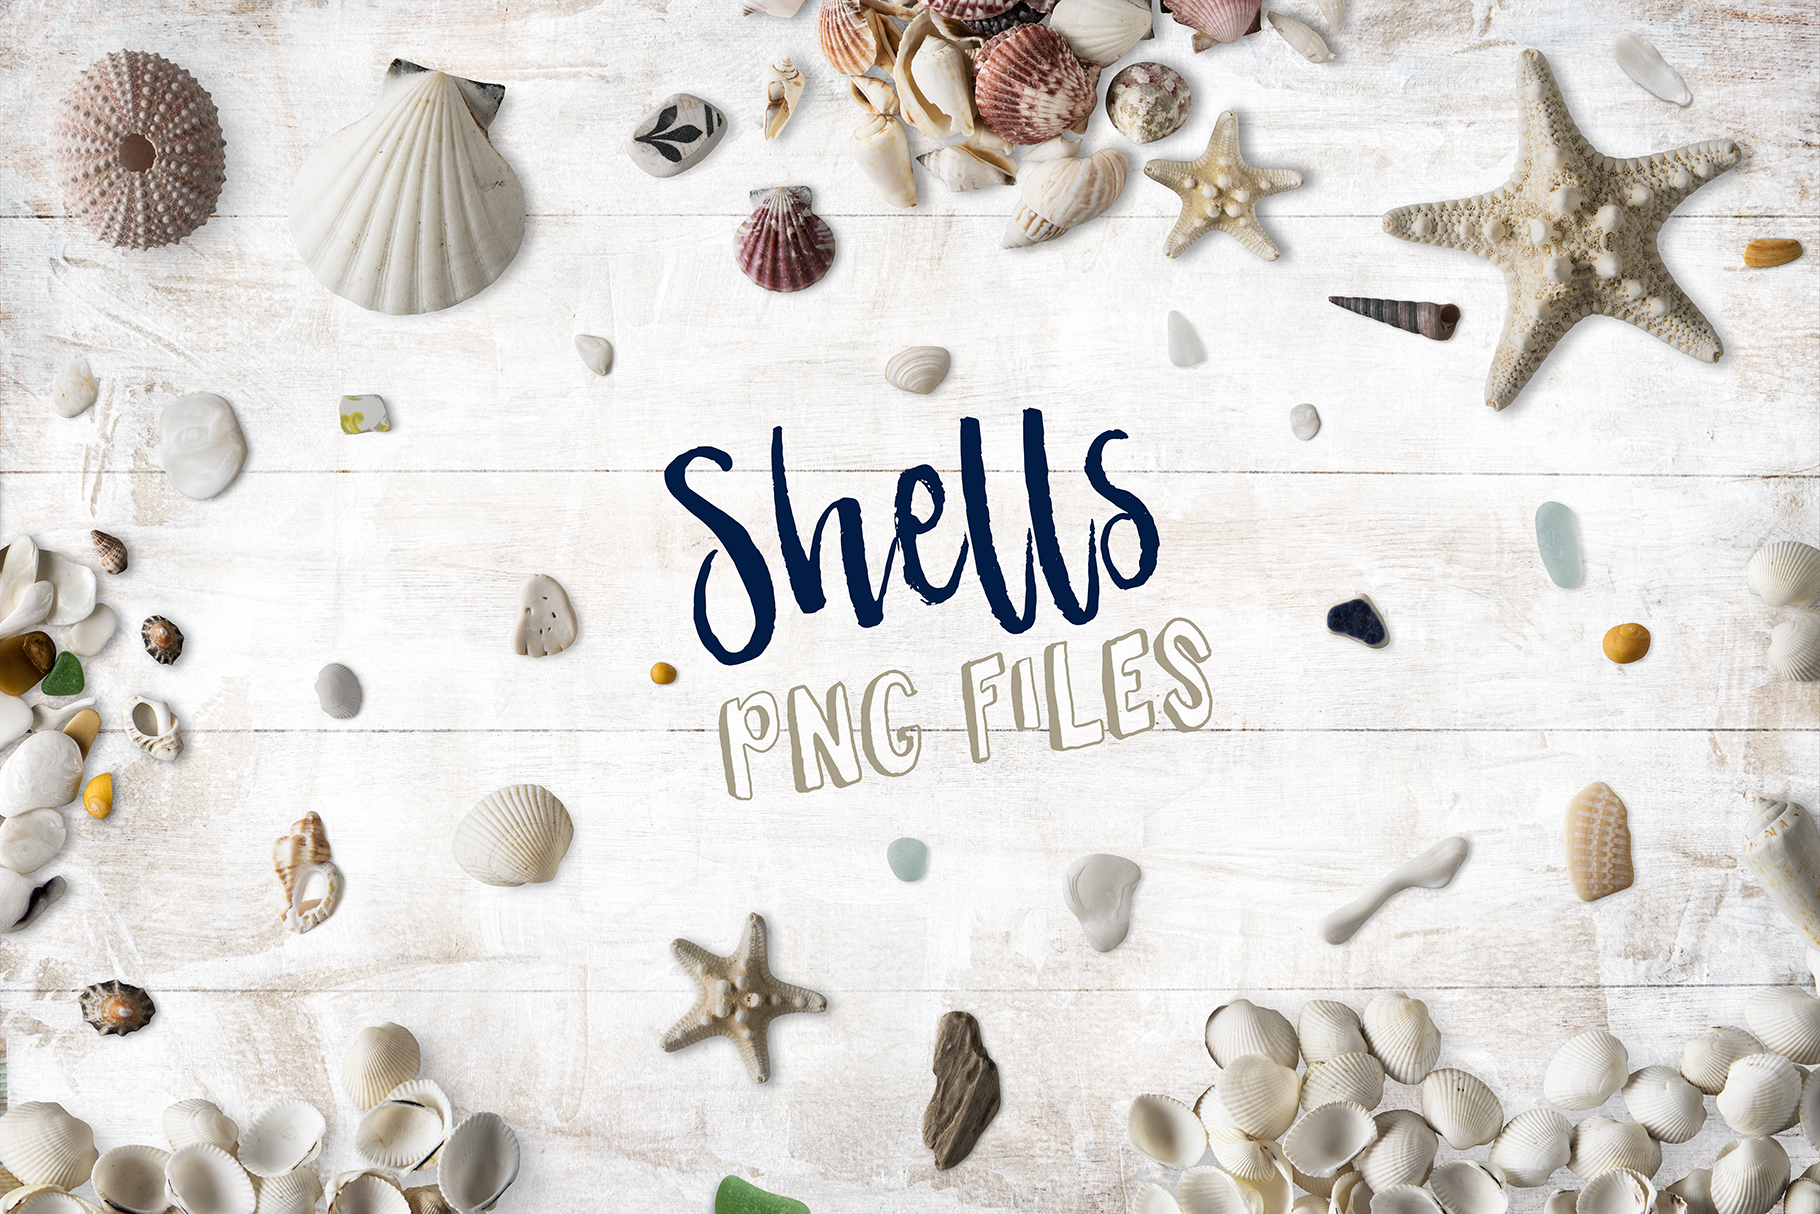 Shells PNG Collection Photo Clip Art example image 1